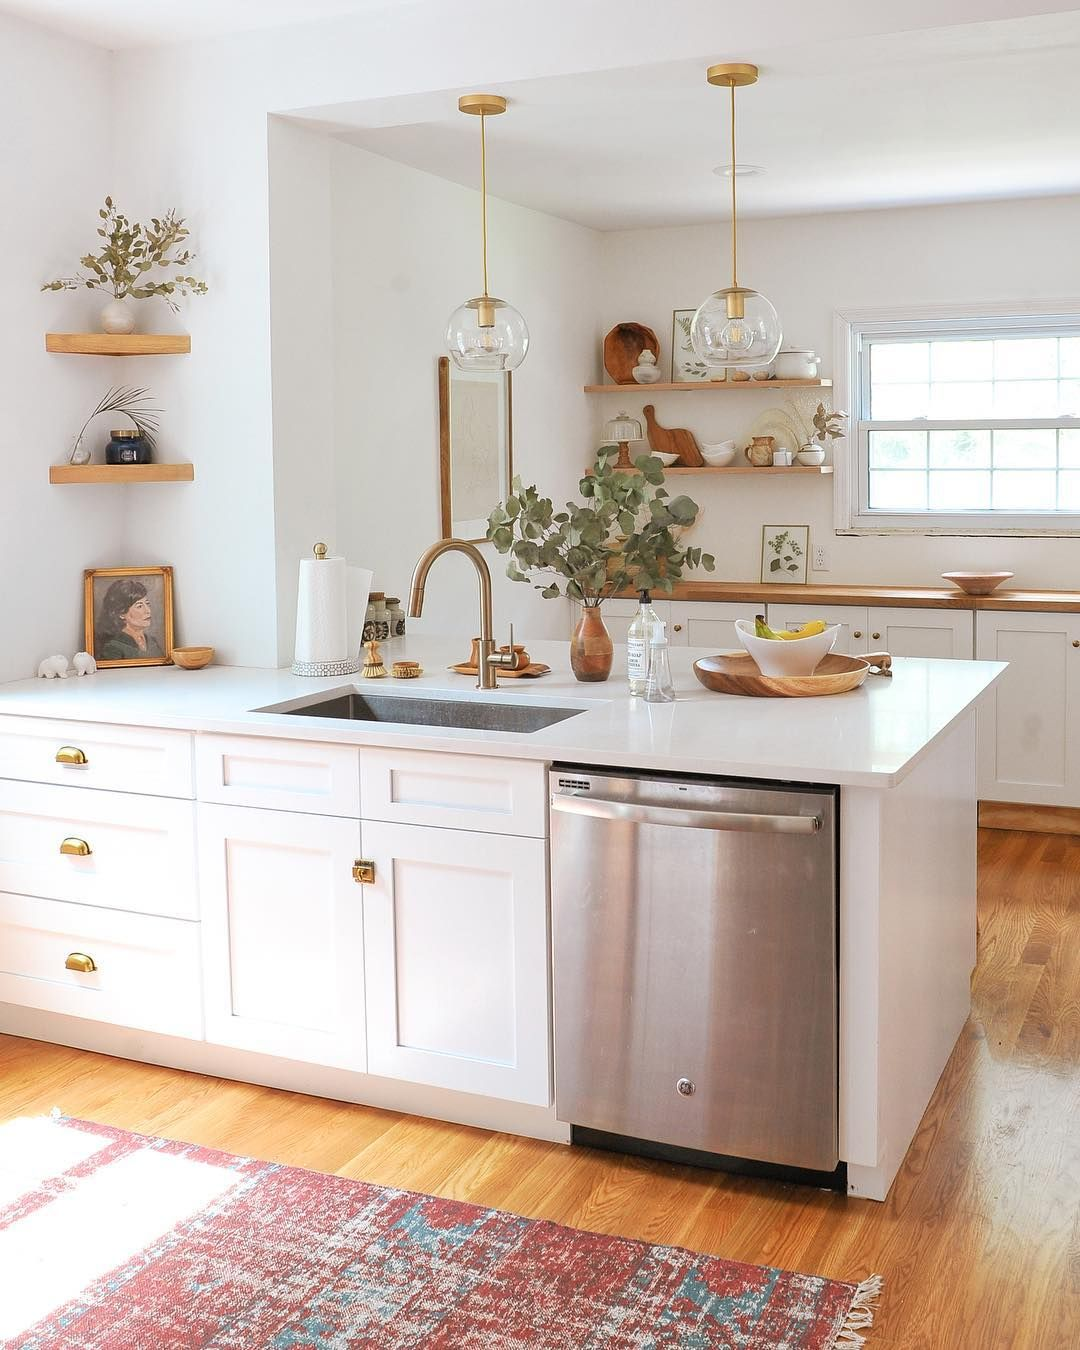 One Kitchen Two Views Swipe To See What This Pittsburgh Kitchen Looks Like From The Other Side White Wood Kitchens Home Decor Kitchen Interior Design Kitchen